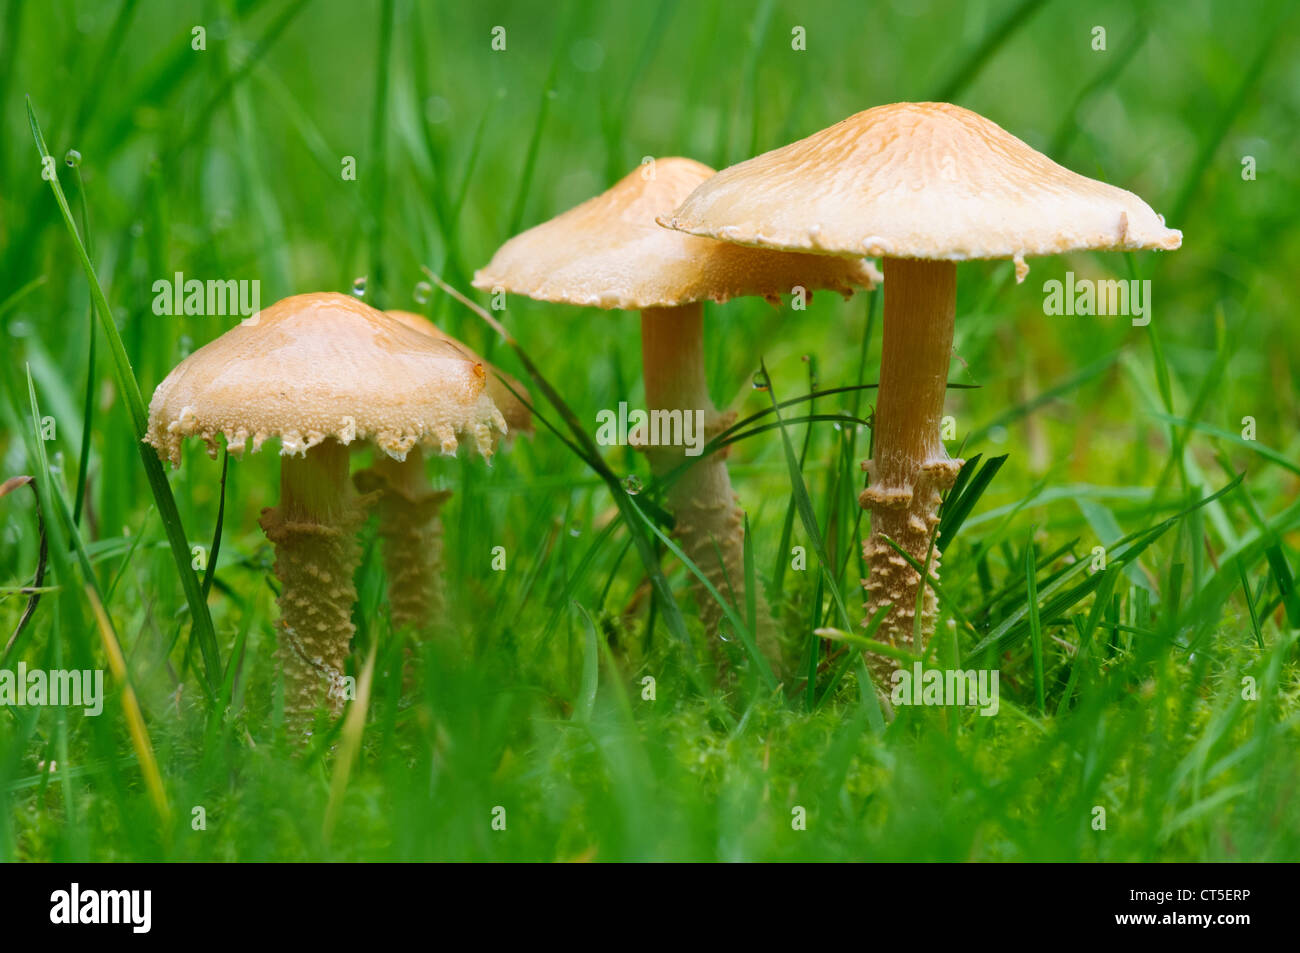 A group of earthy powdercaps (Cystoderma amianthinum) growing in grass at Clumber Park, Nottinghamshire. October. - Stock Image